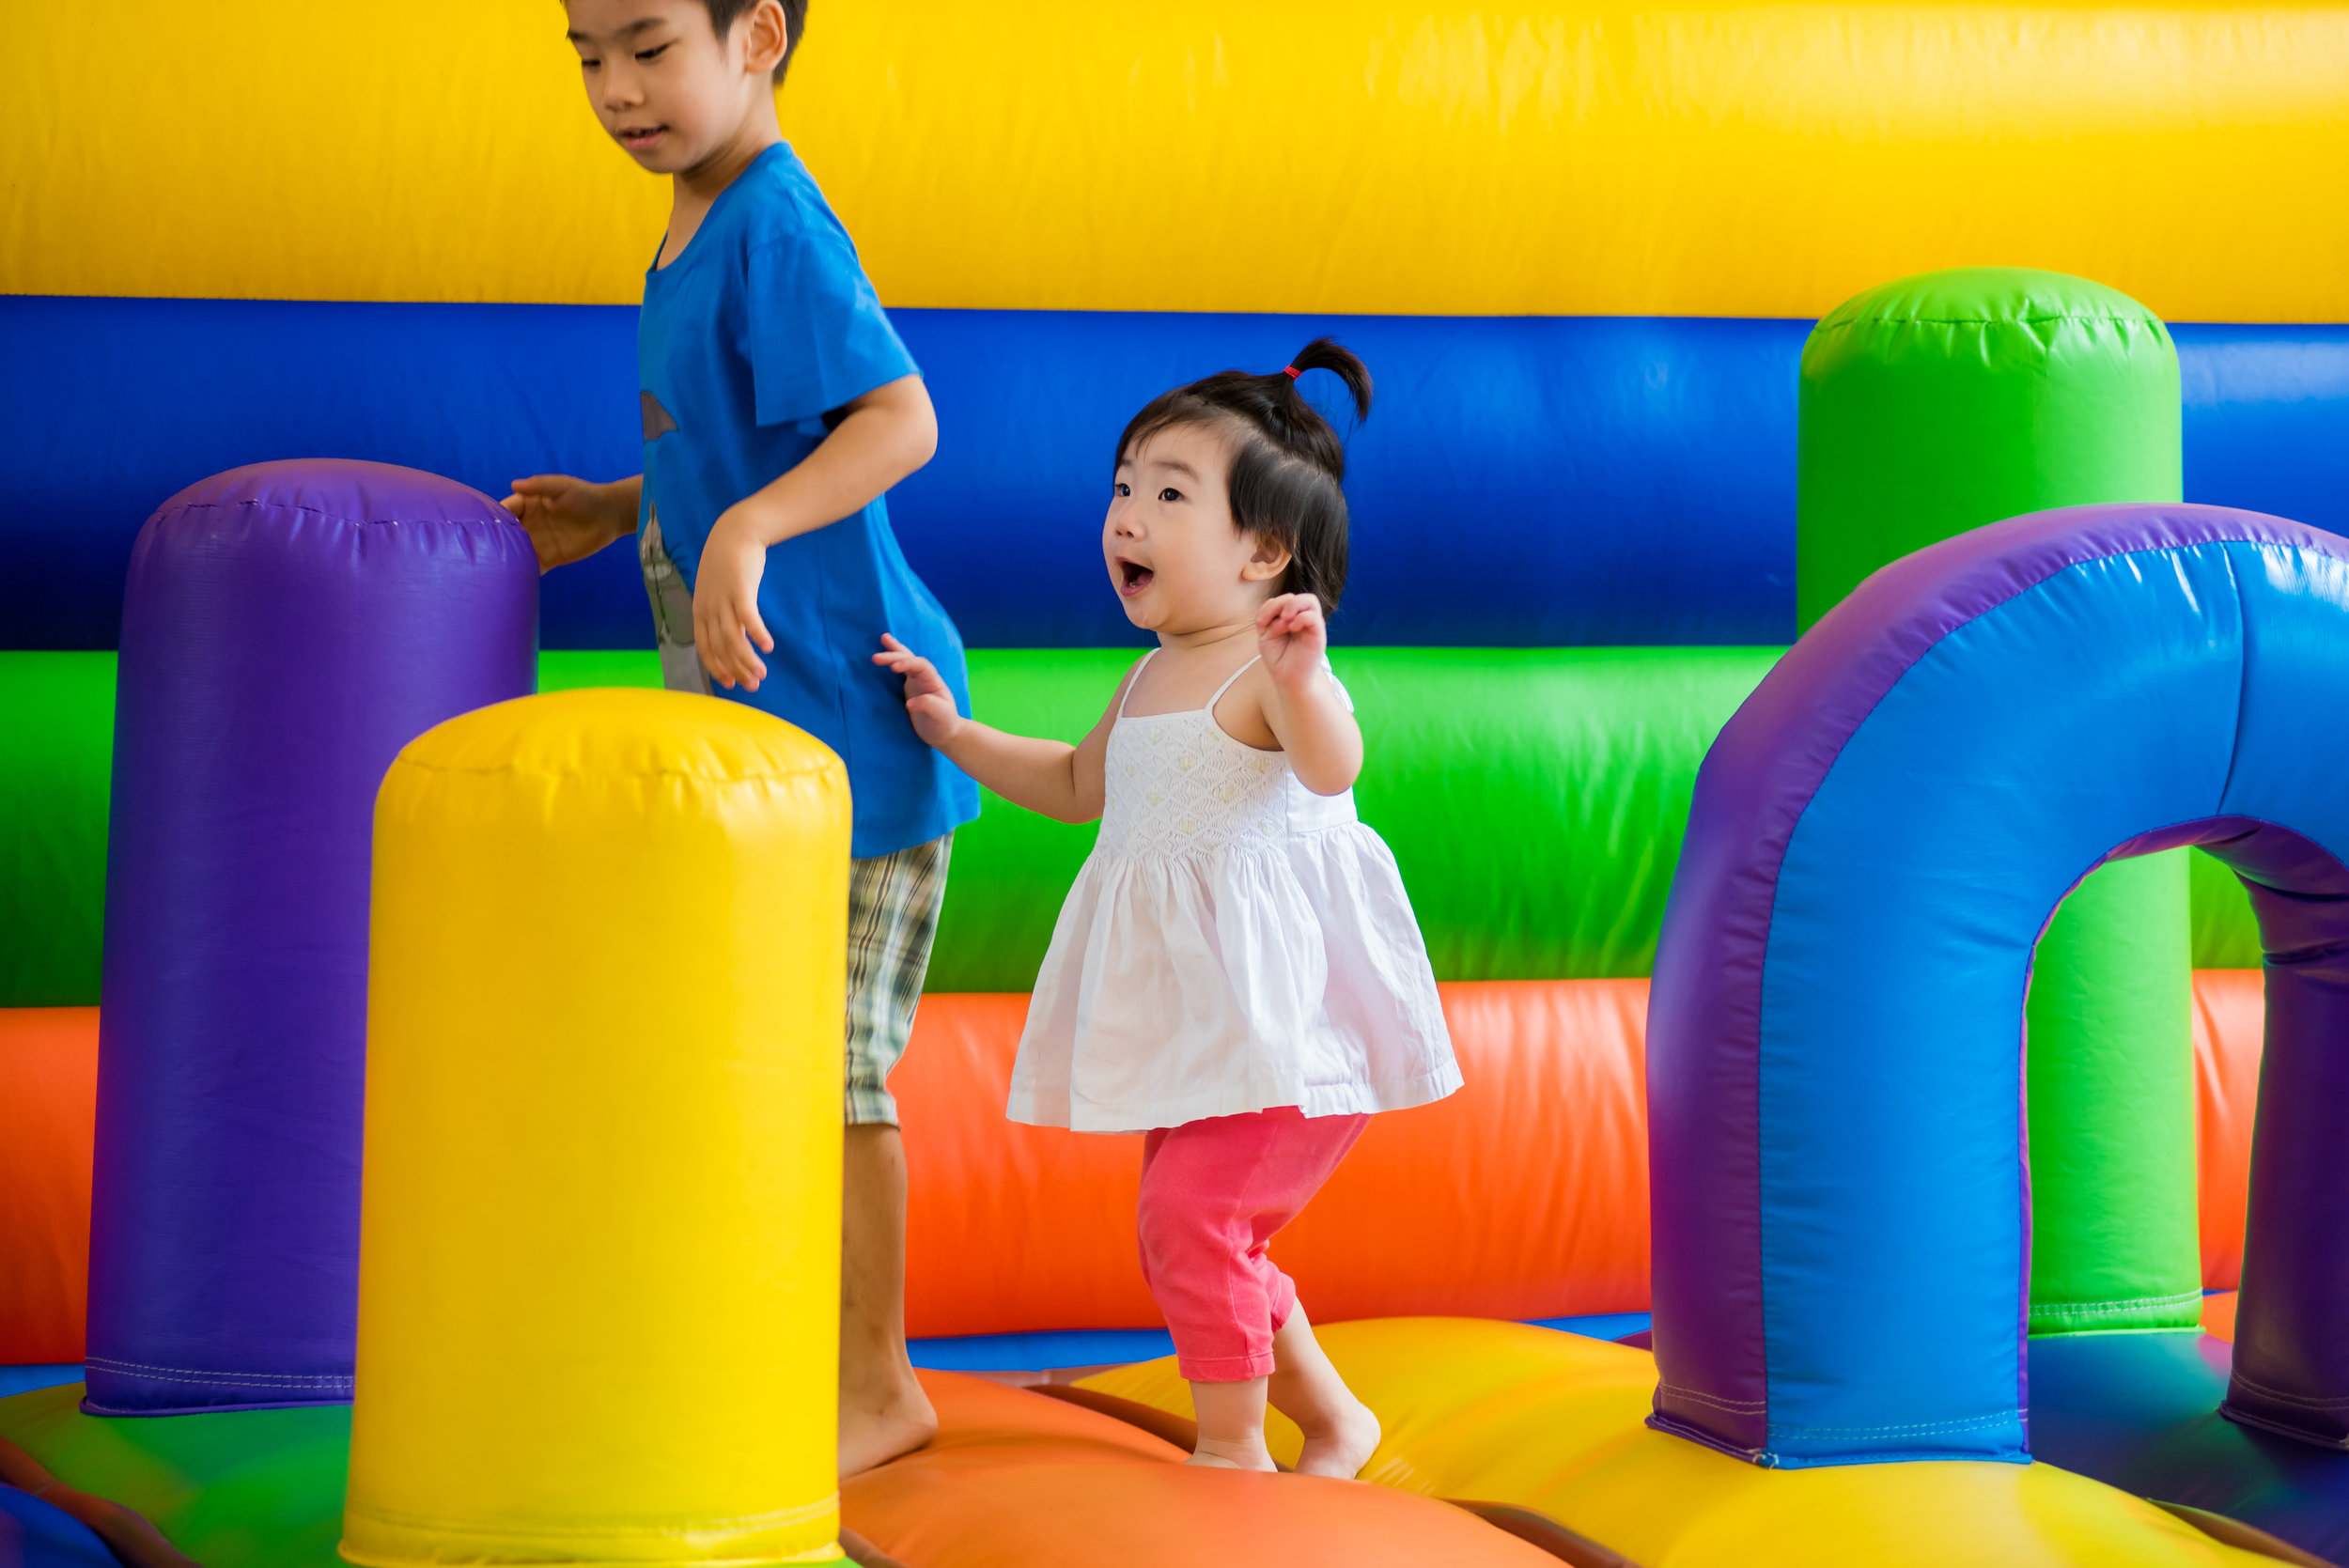 Our bouncy castle available from 3pm – 7pm on weekdays & 9am – 8pm on weekends (weather permitting).